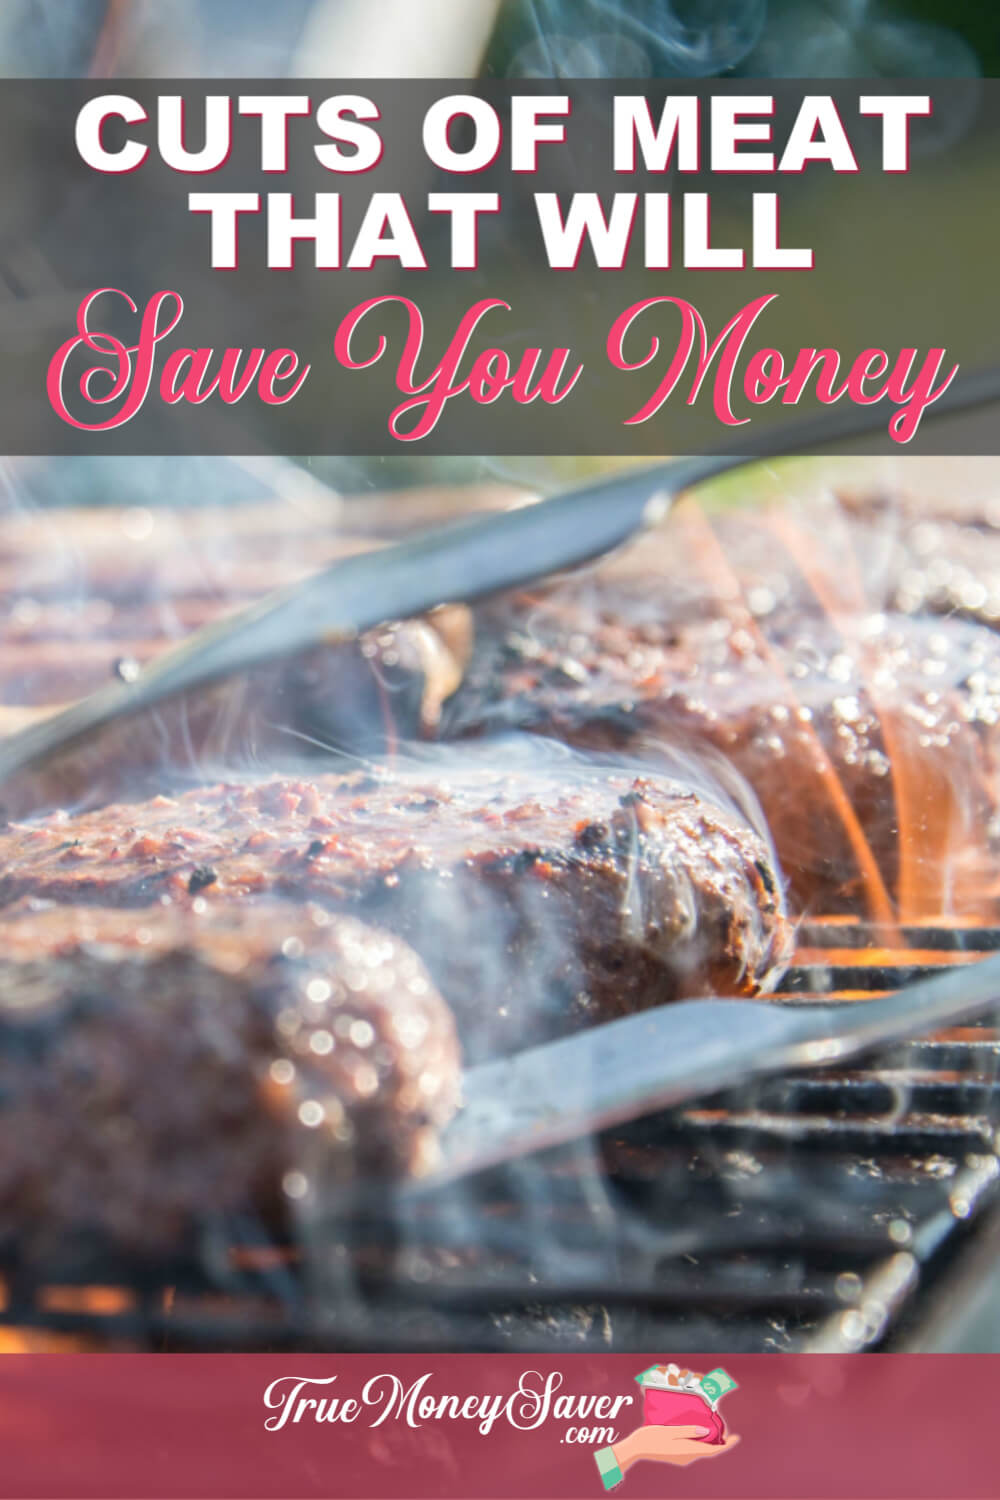 Saving money on your family's meat can be an ongoing challenge. Use these tips to find types of meat that are cheaper, yet keep ALL the flavor! #truemoneysaver #meat #meatballs #meatloaf #meateater #meatlover